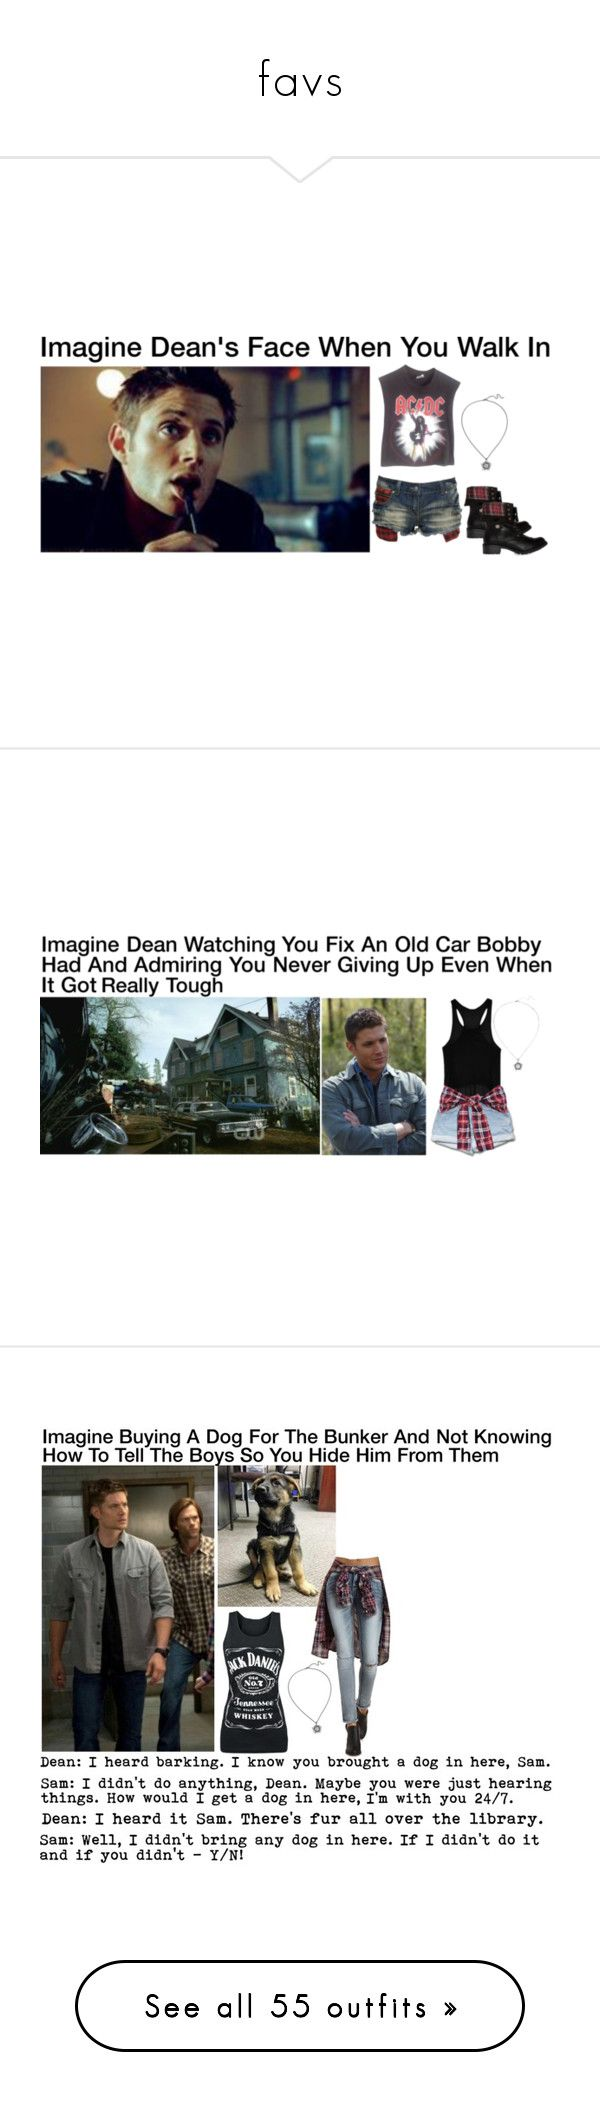 """favs"" by httpkristina ❤ liked on Polyvore featuring Vintage, Crafted, Steve Madden, imagine, supernatural, DeanWinchester, Go Green M by M, Refuge, dog and samwinchester"